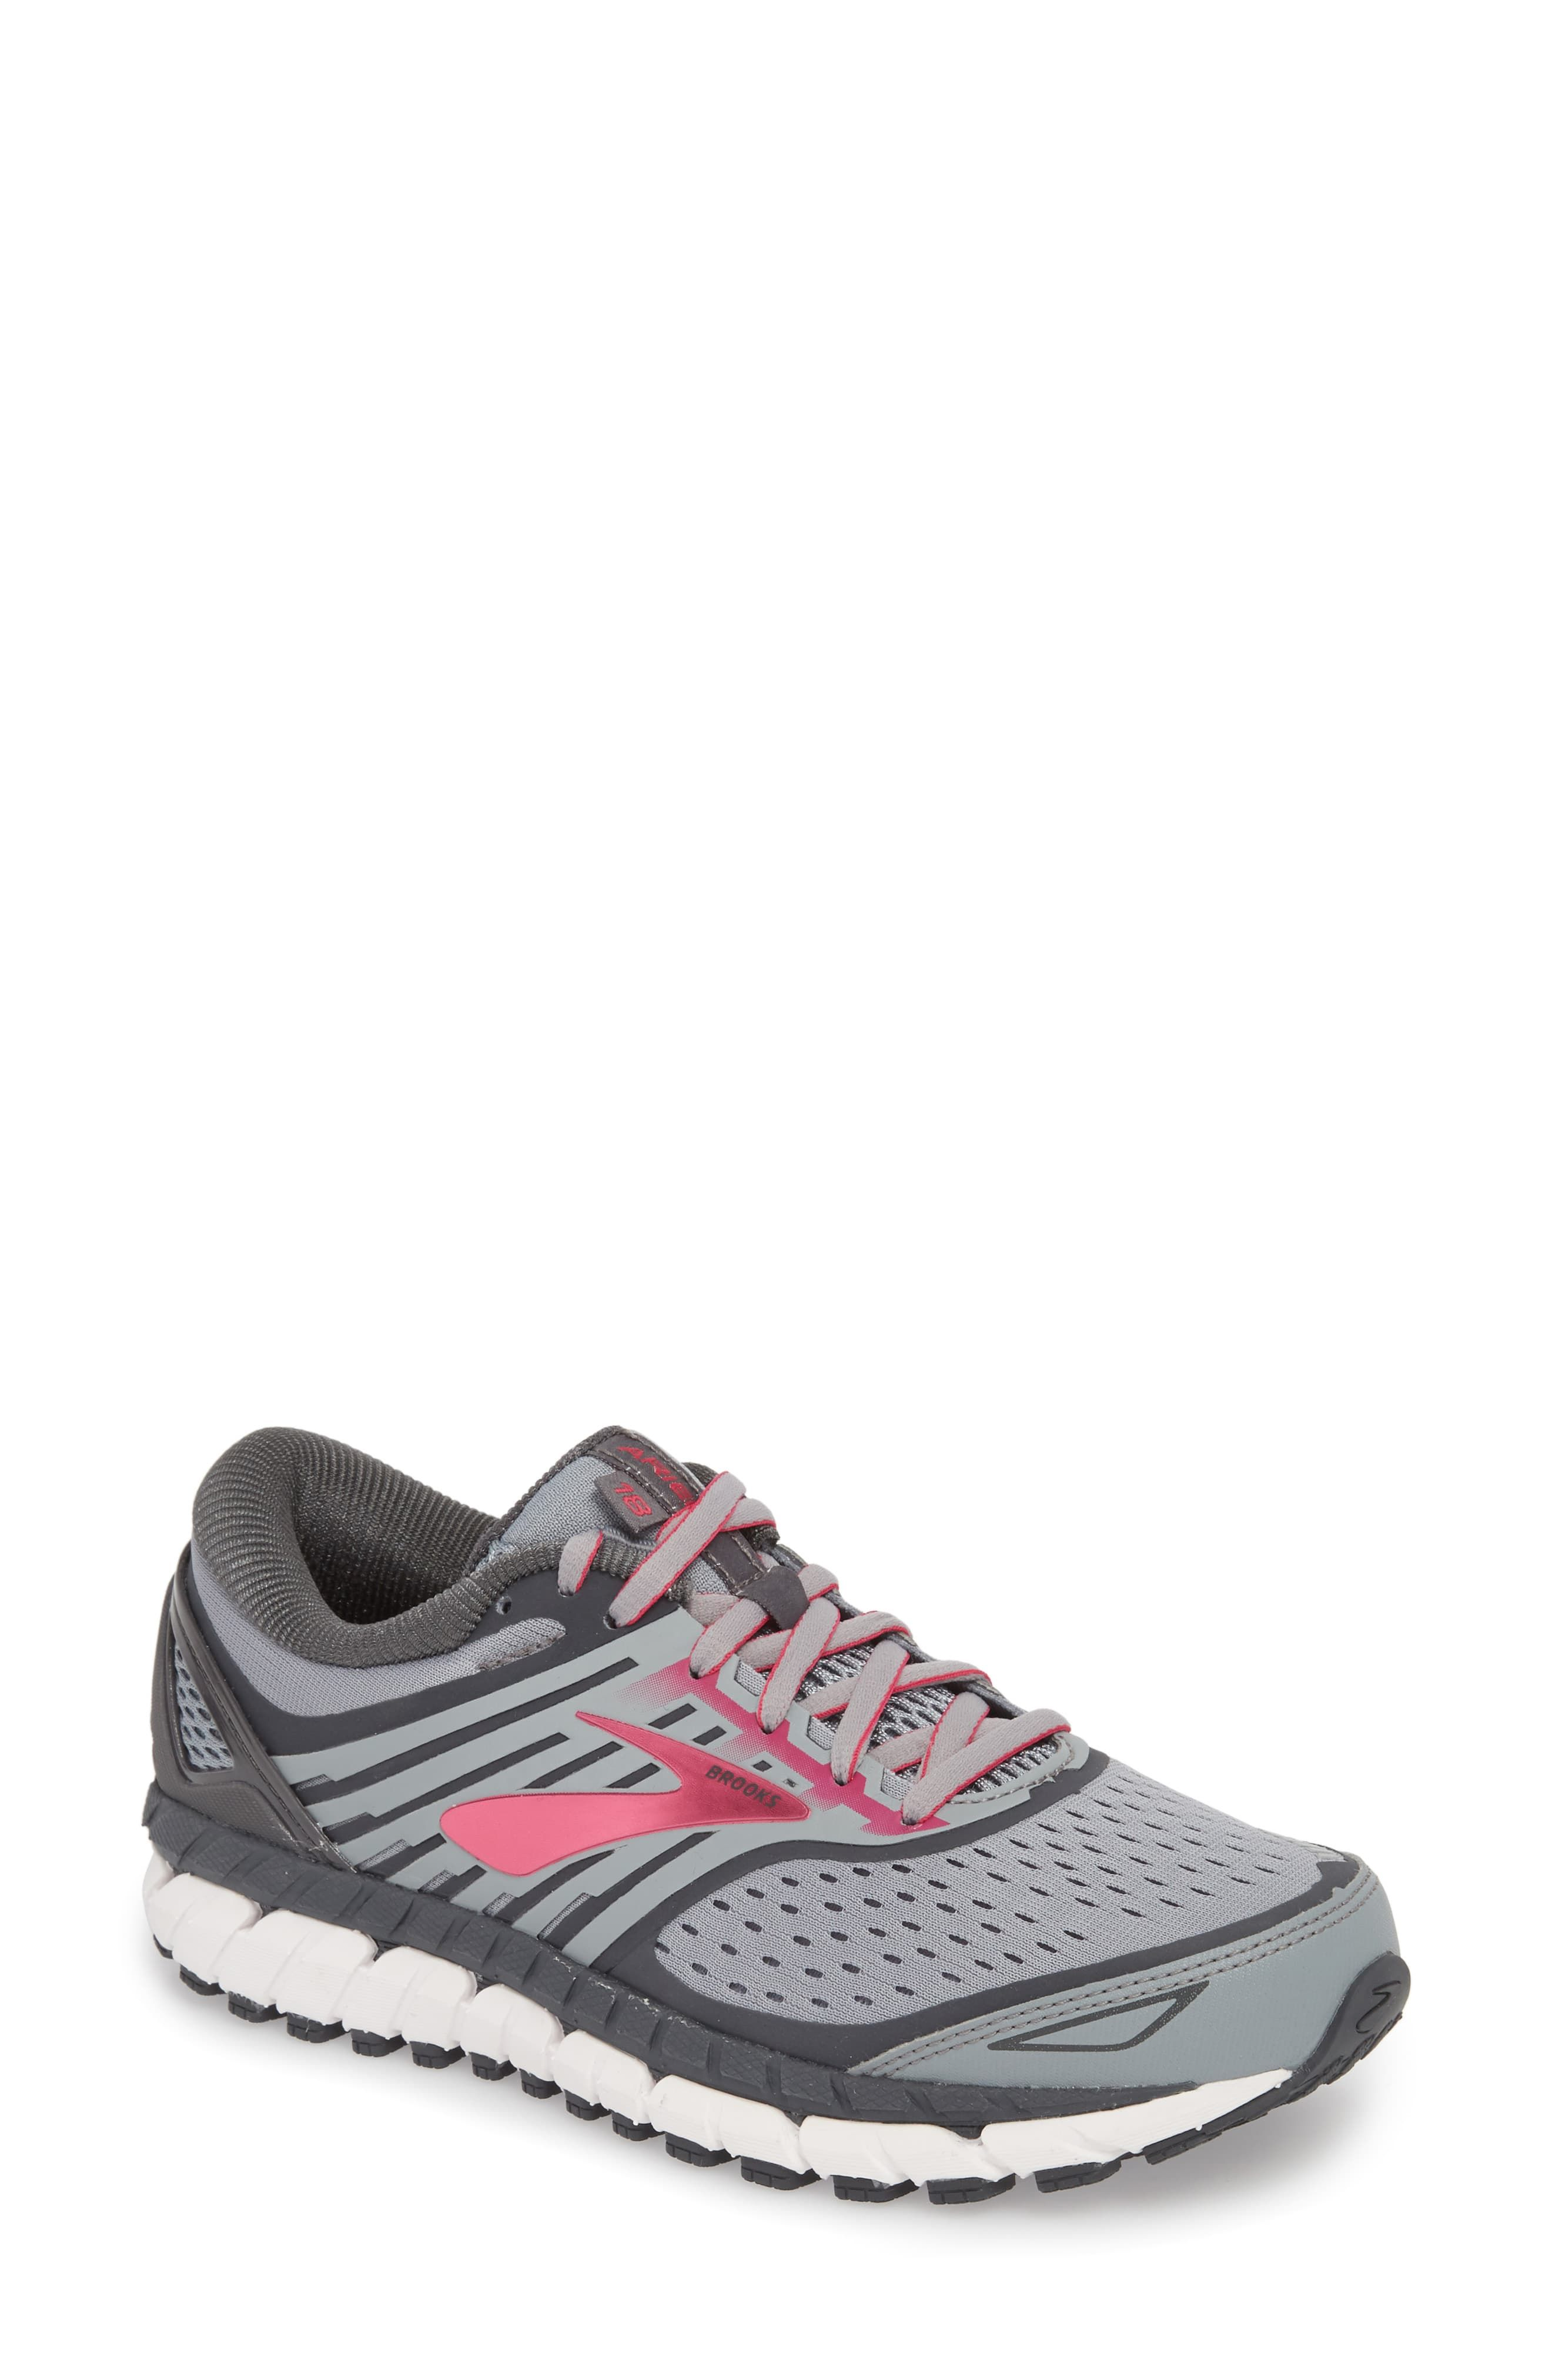 check out ae493 47bf7 Women's Brooks Ariel 18 Running Shoe, Size 6.5 D - Black in ...